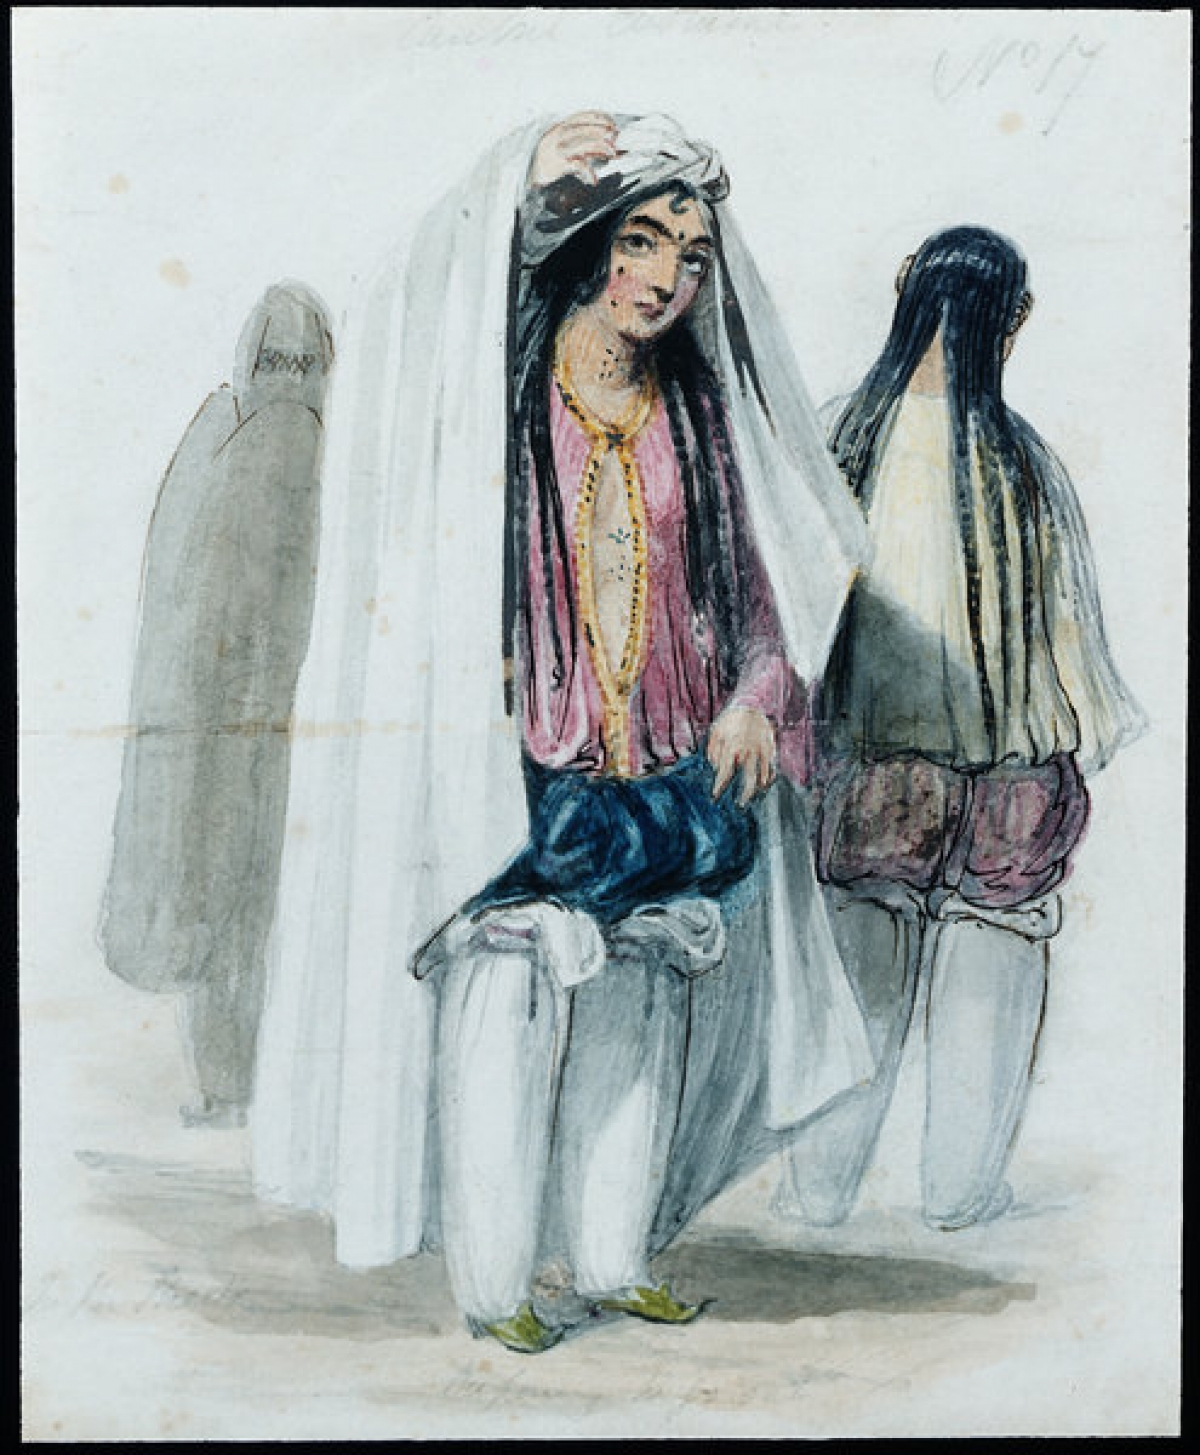 """Cabul Costume. In the Street. Preparing to go out."" Water colour by James Atkinson, c. 1840, showing a lady in Kabul with her chadari and under garments."